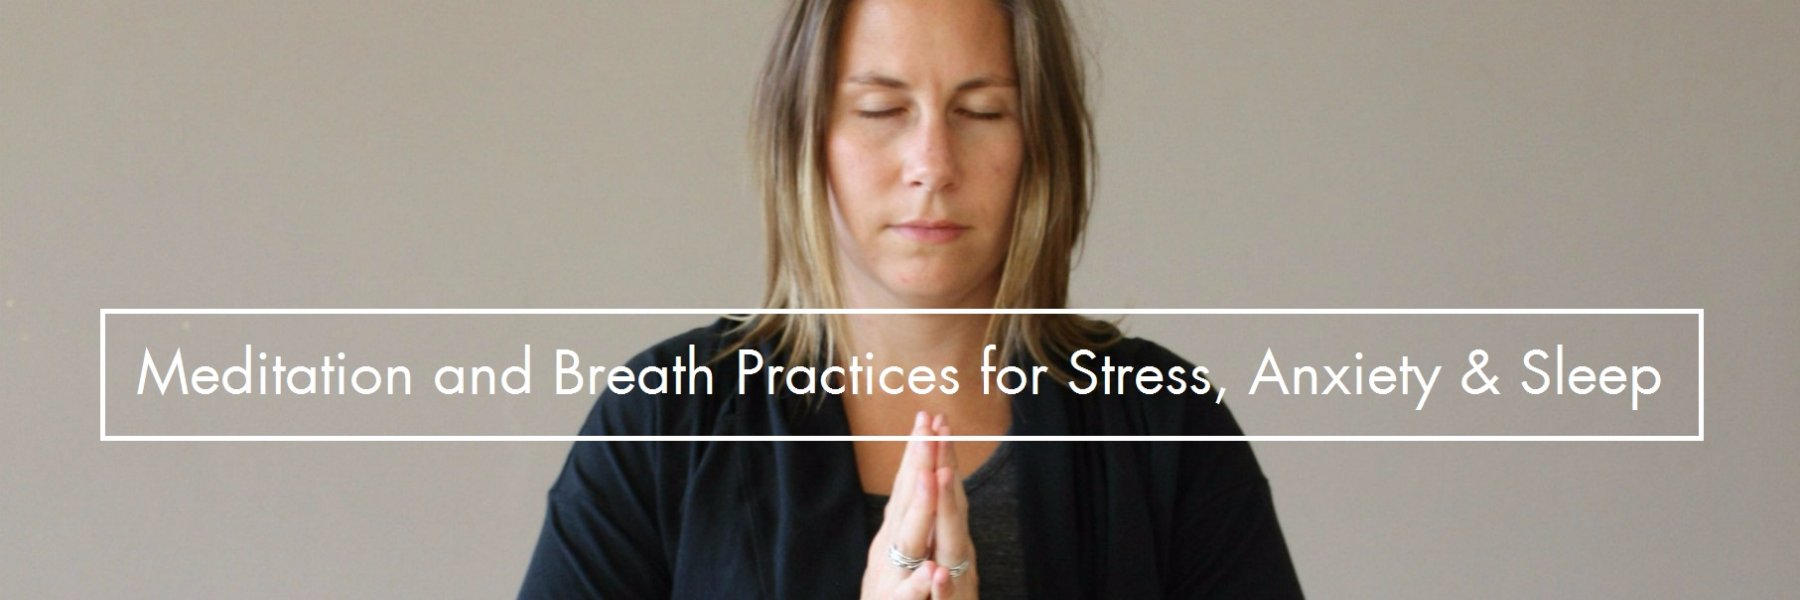 Practices for pregnancy and postpartum to calm worry and ease the mind